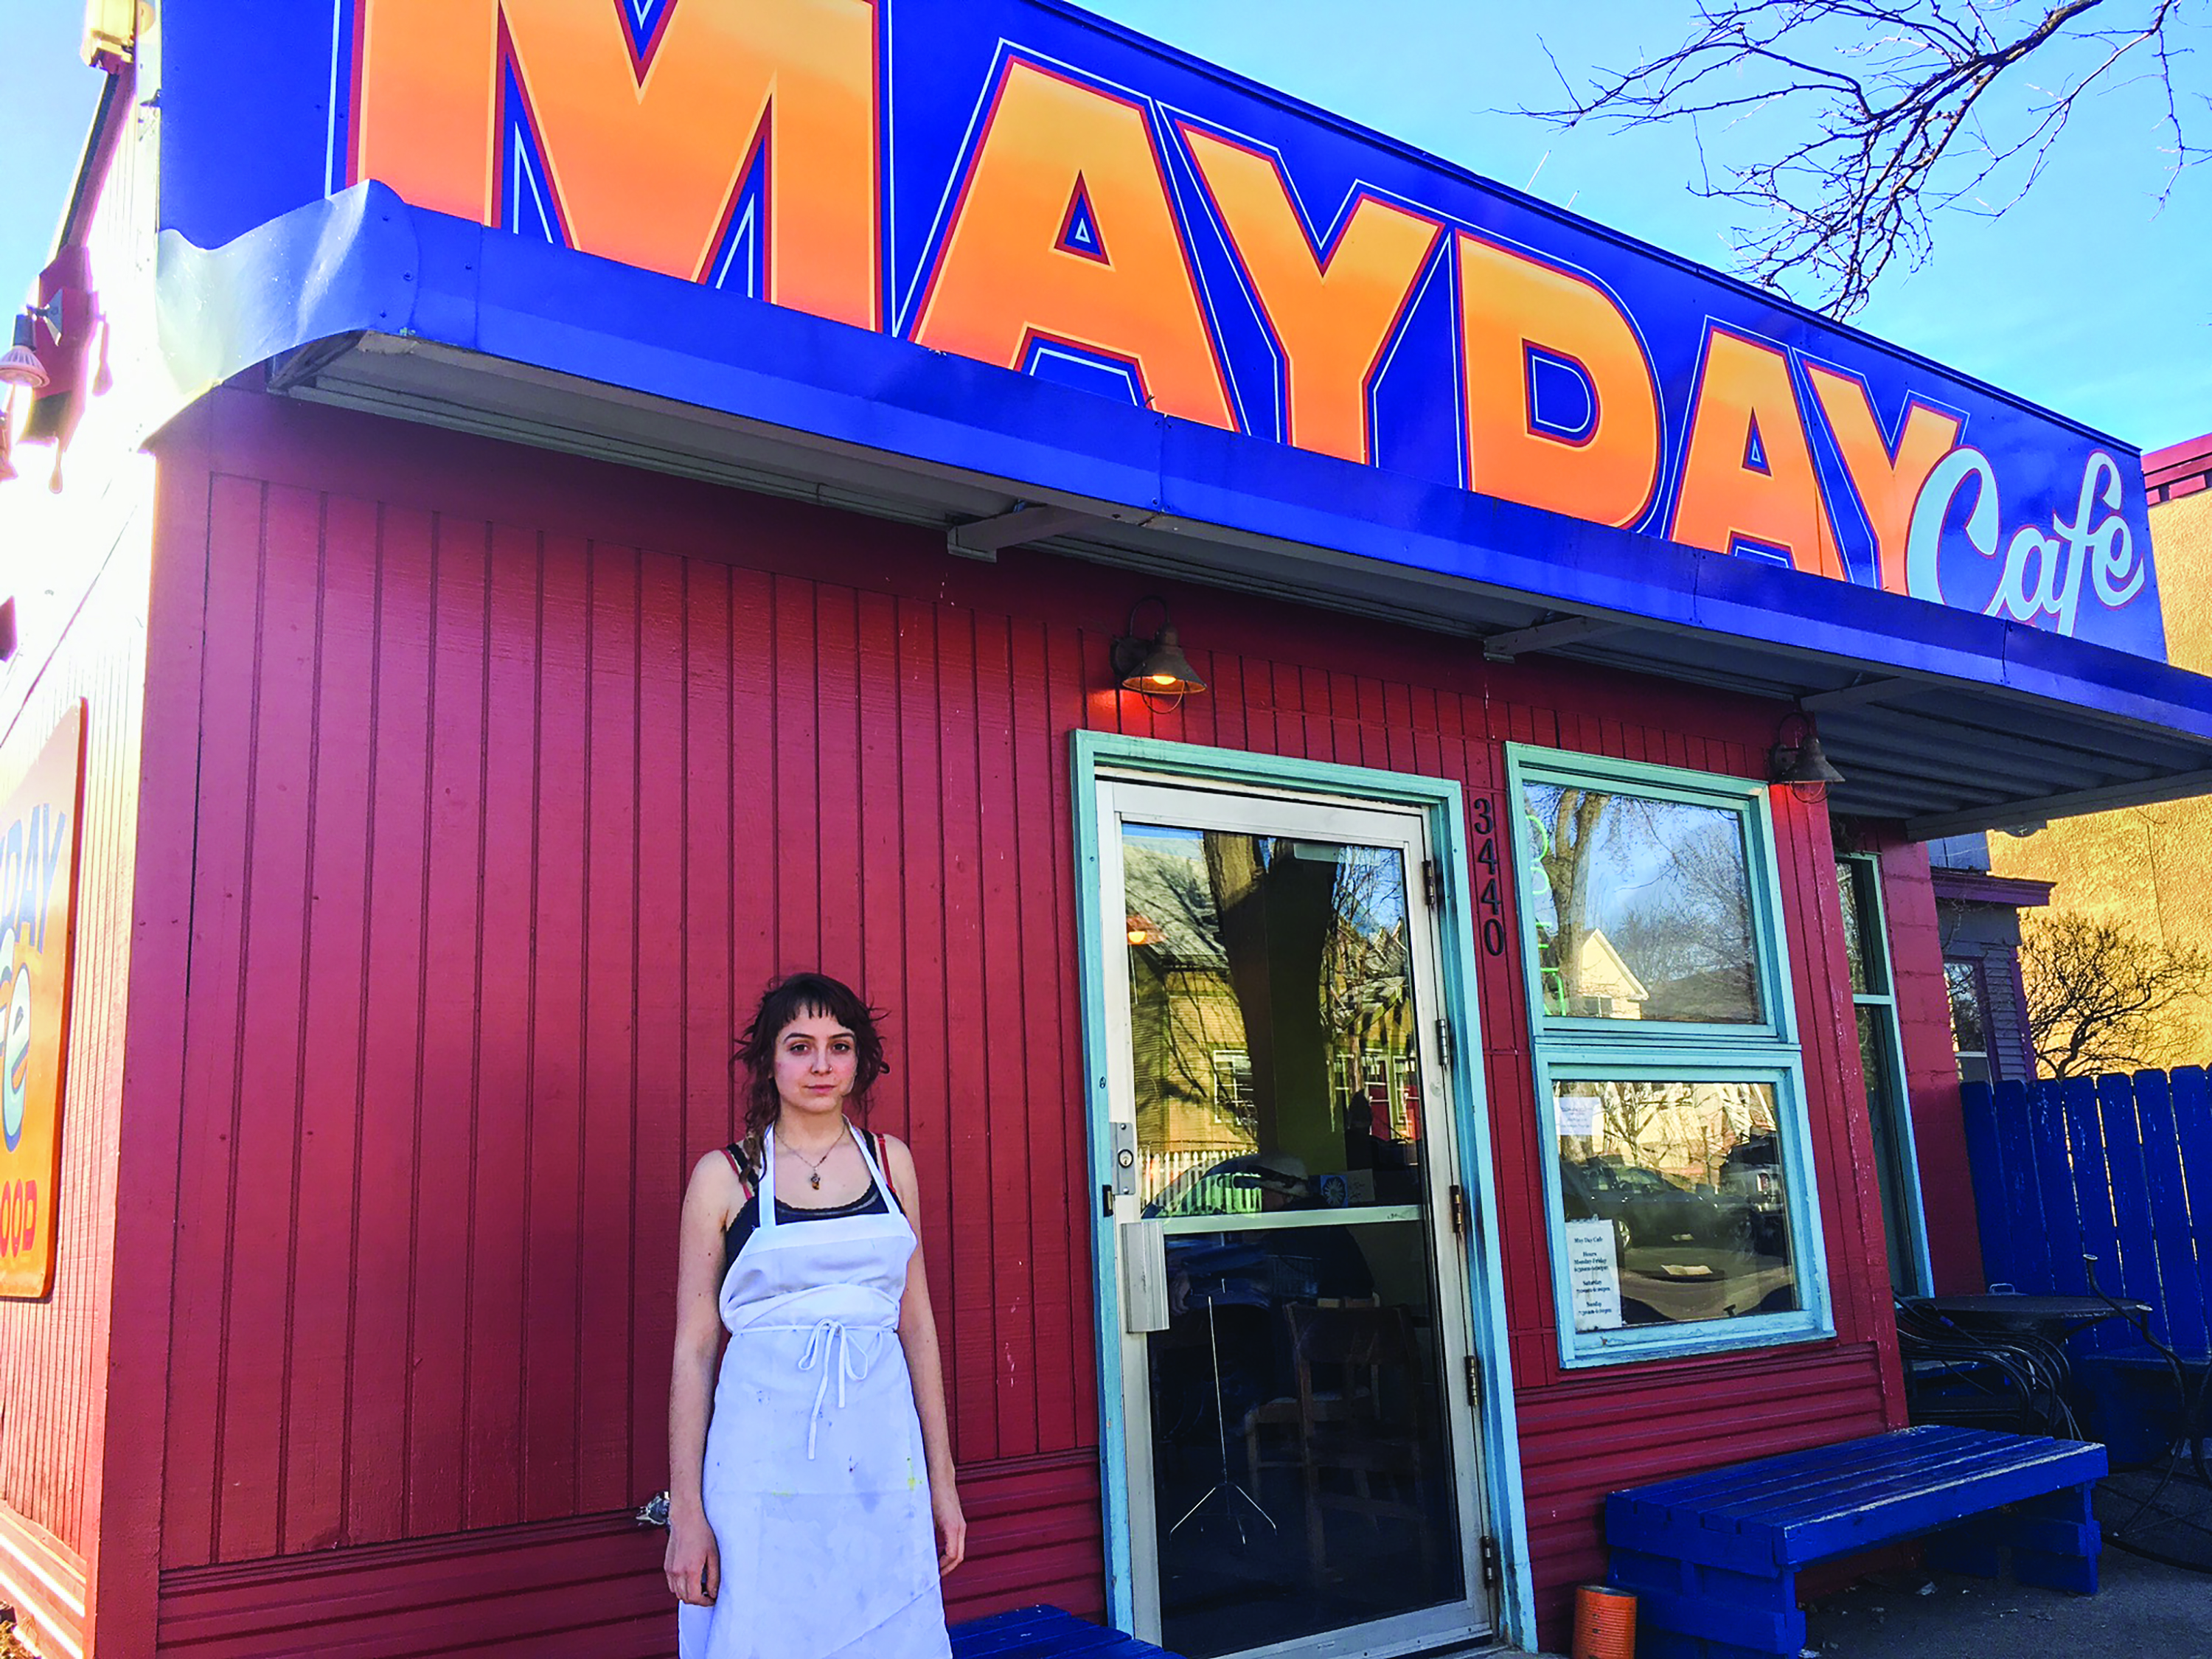 Cool Jobs: May Day Cafe